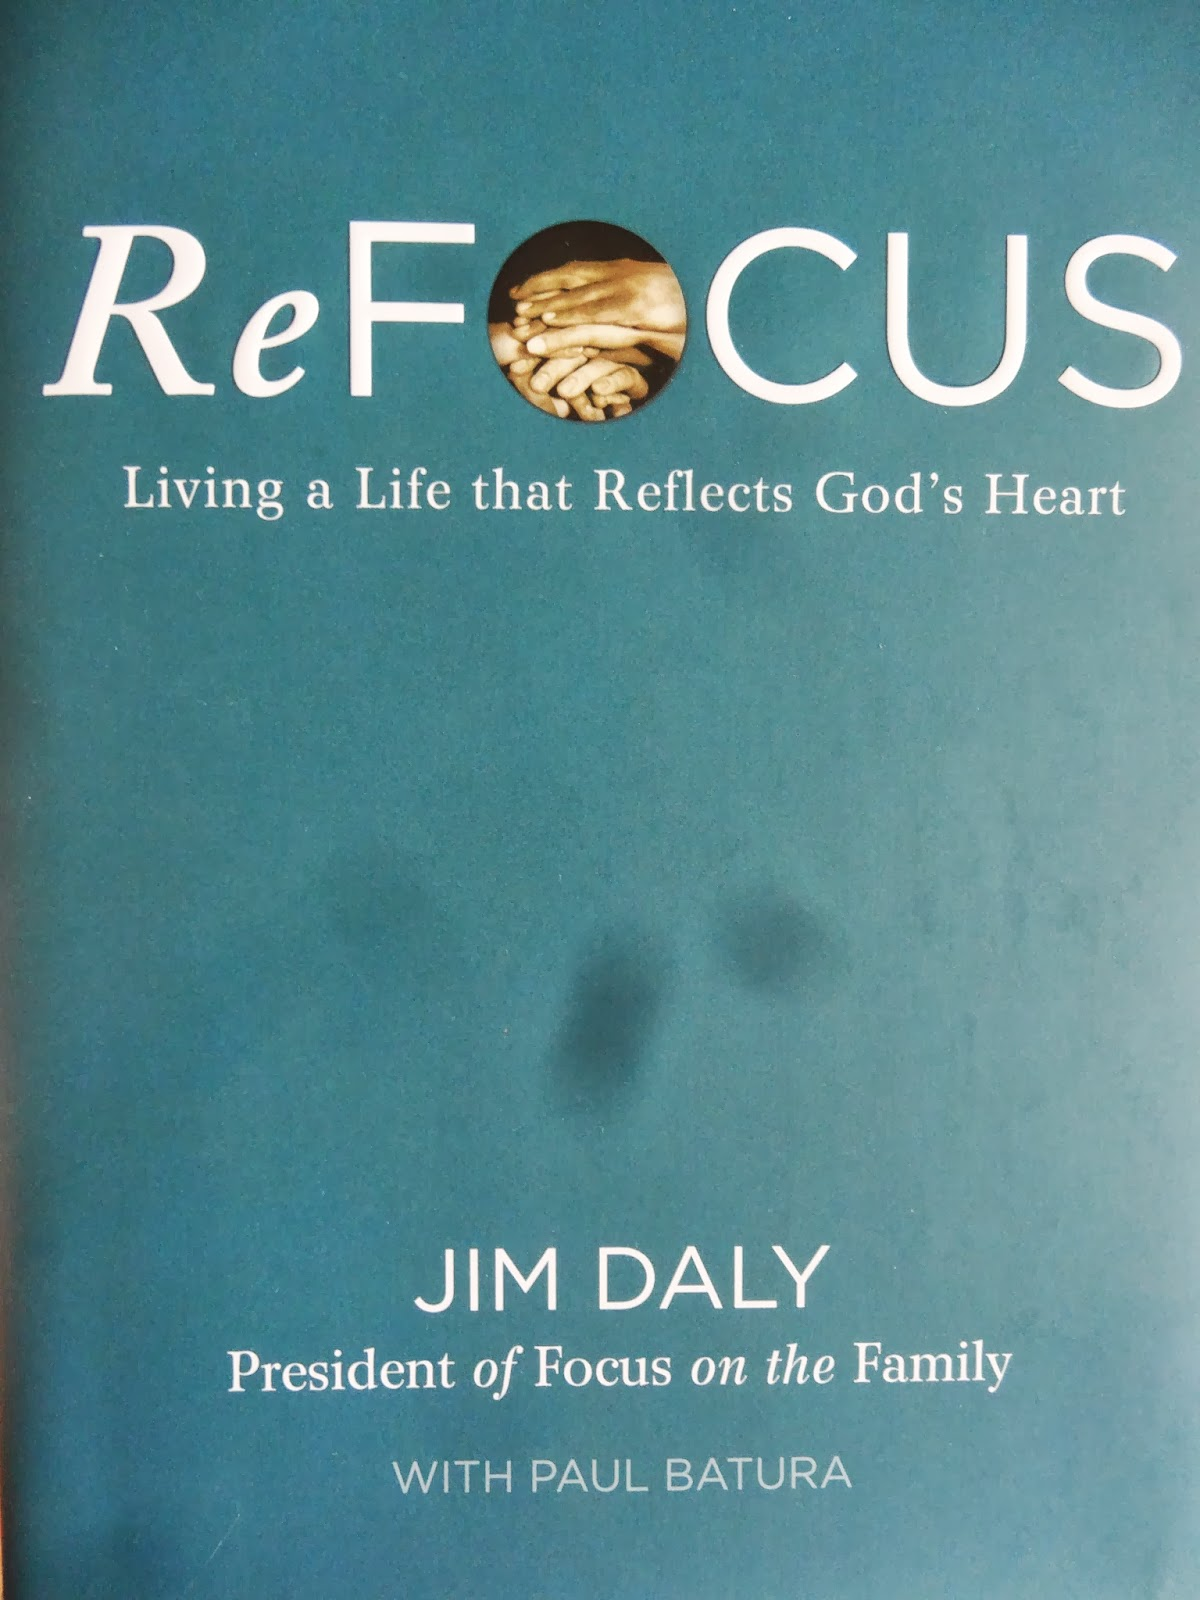 Book Quotes About Life Love Joy And Peas Refocus Living A Life That Reflects God's